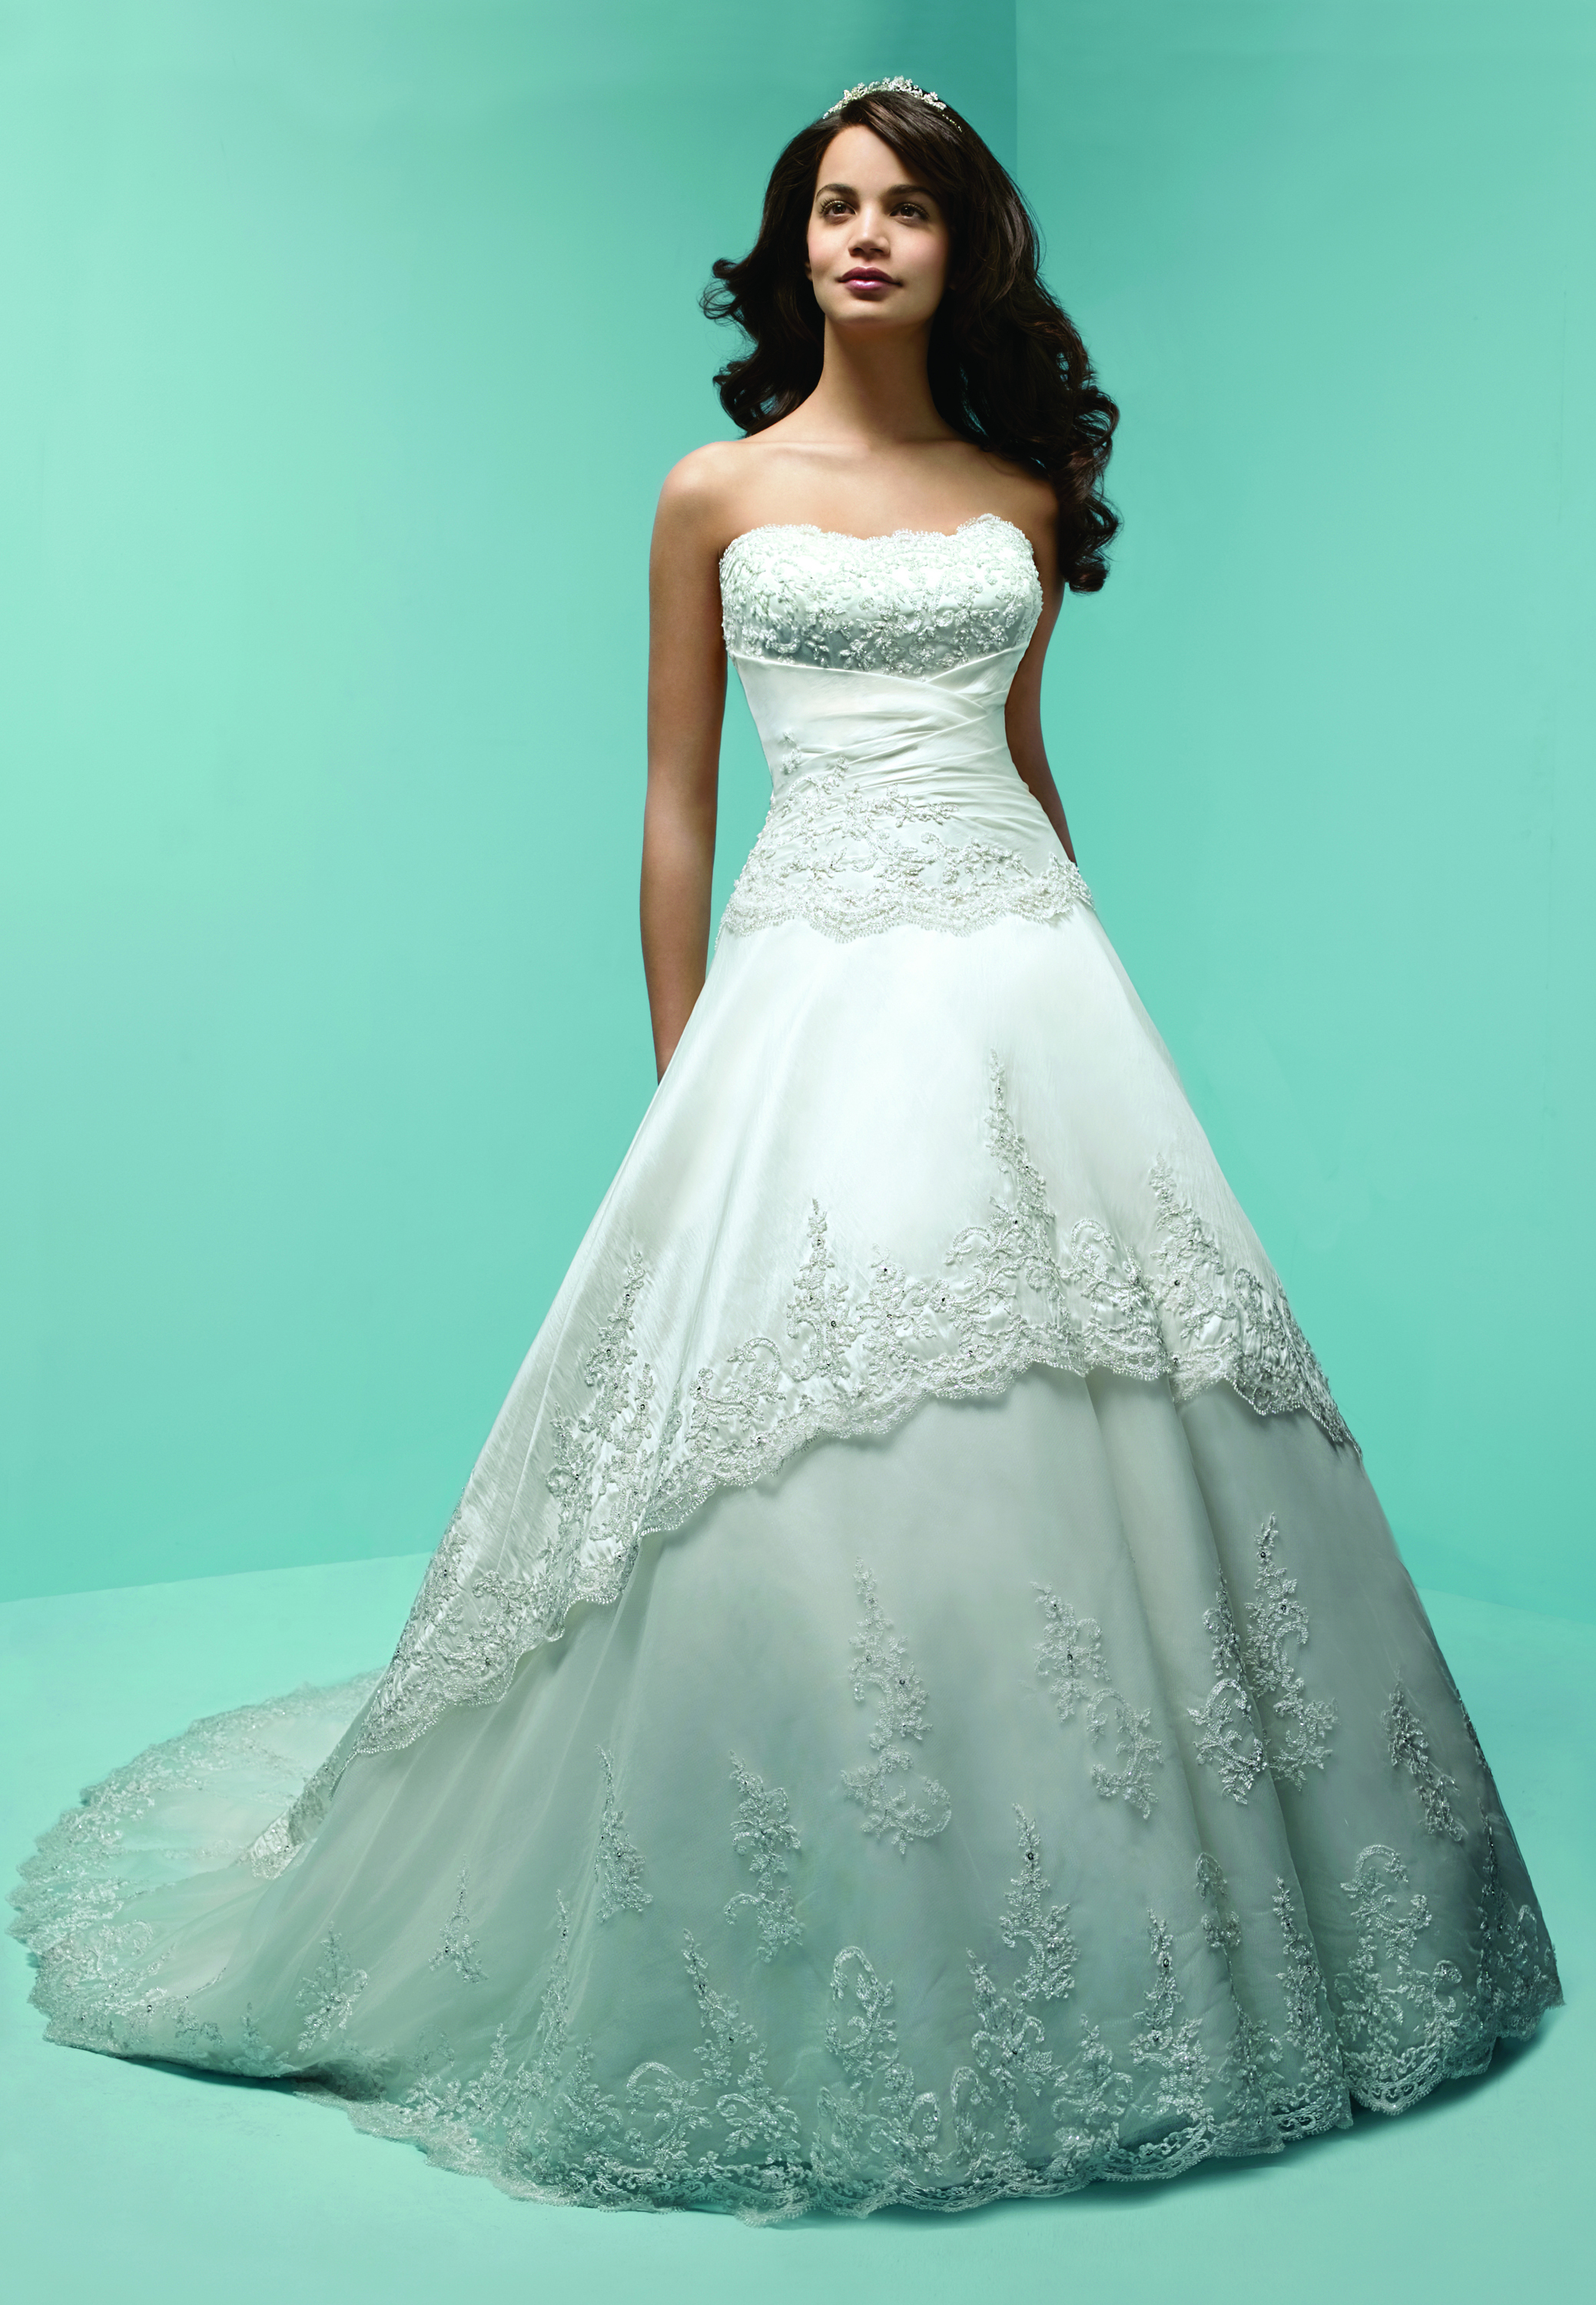 Wedding Dresses, Fashion, dress, Alfred angelo